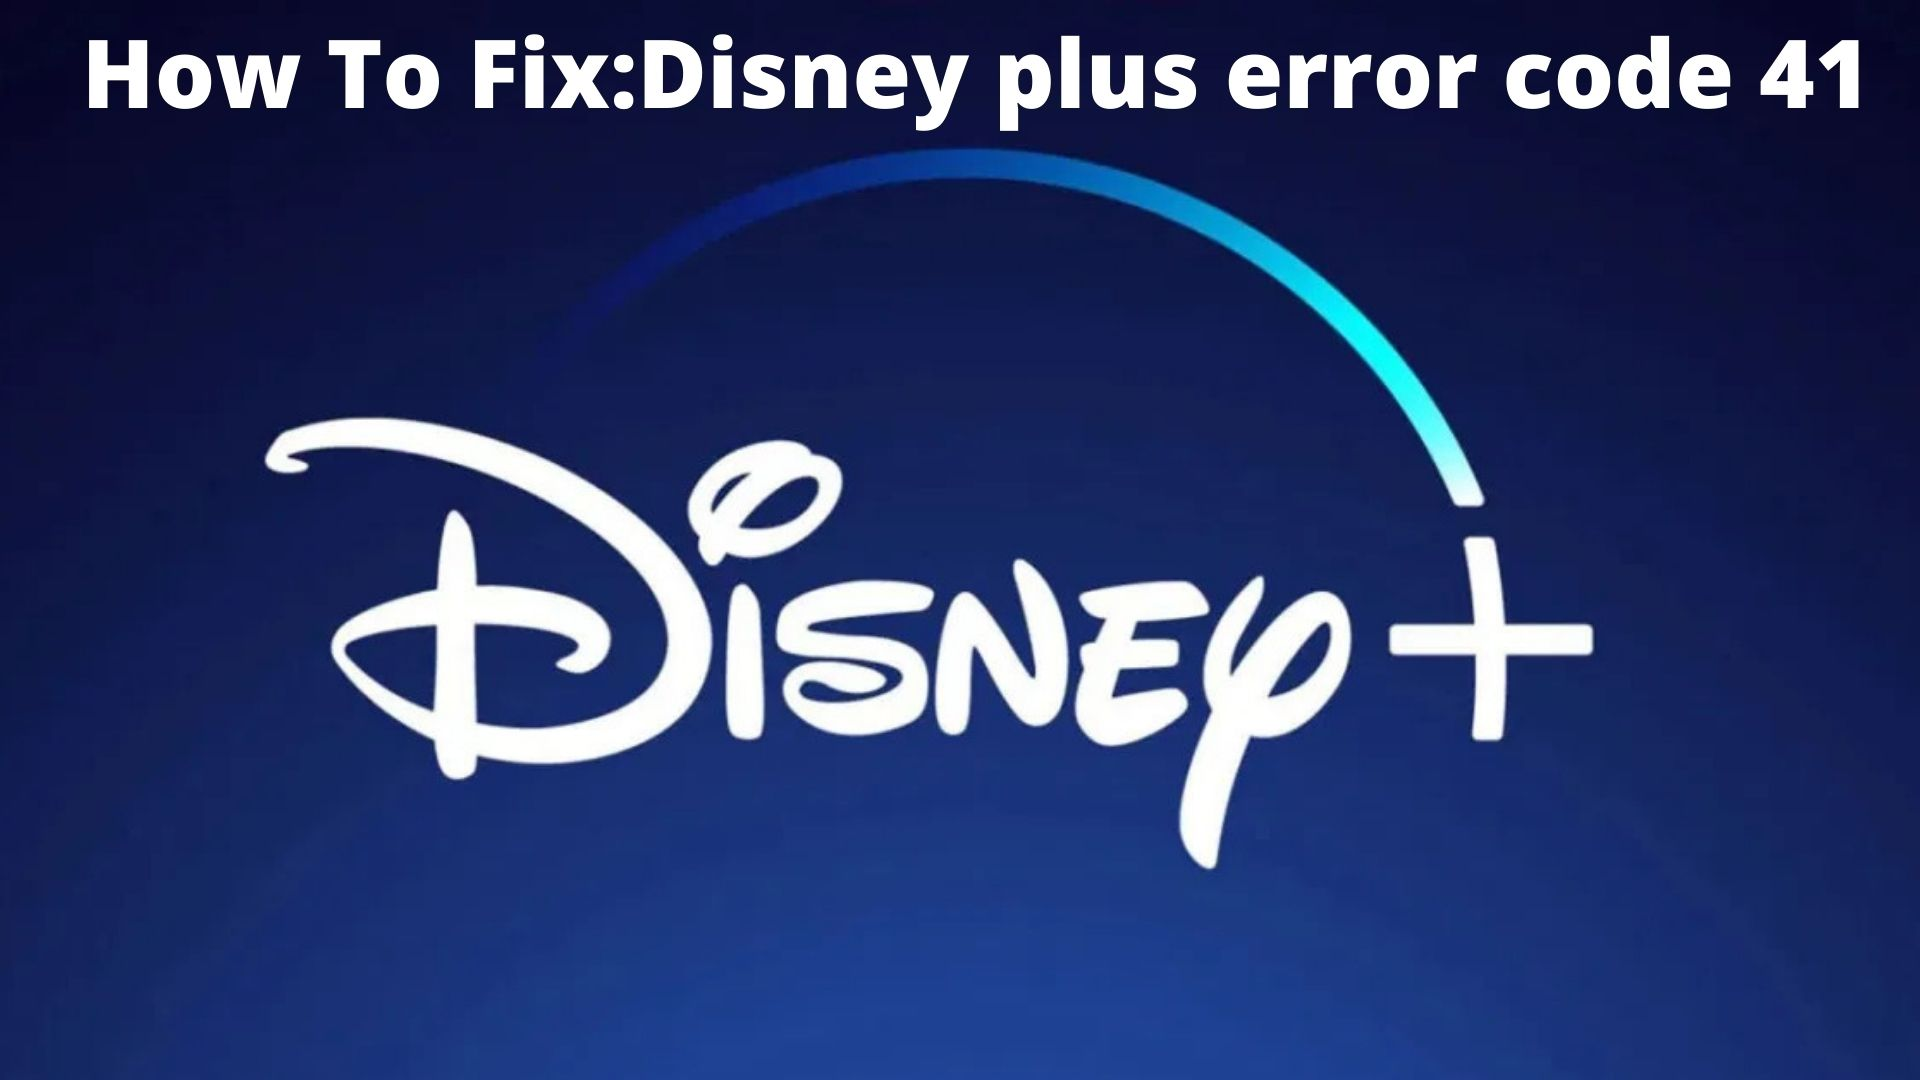 How To Fix Disney plus error code 41